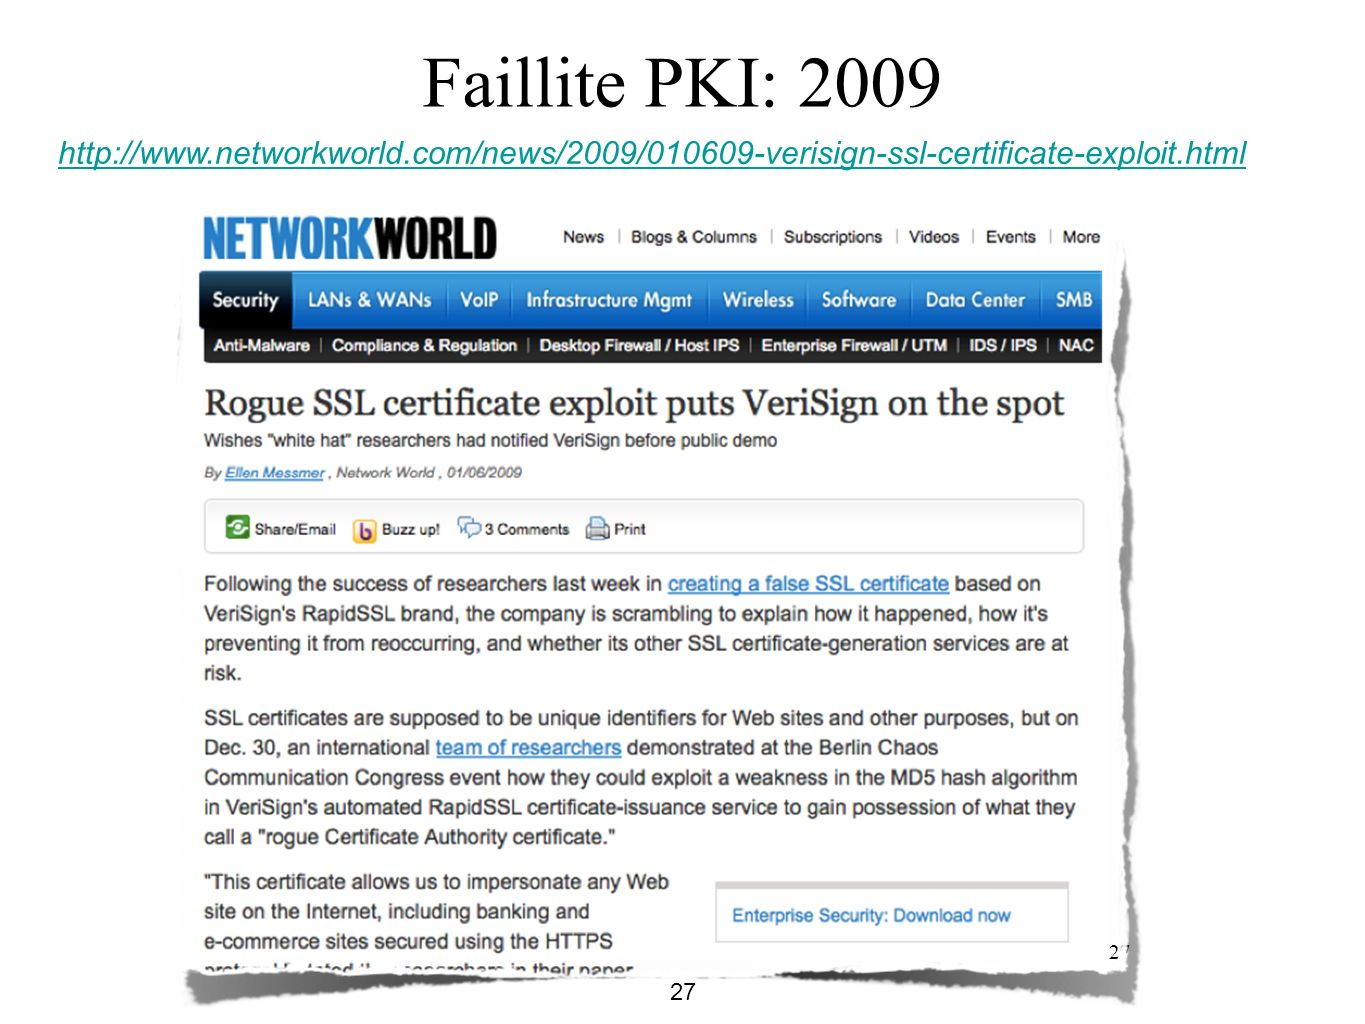 27 Faillite PKI: 2009 http://www.networkworld.com/news/2009/010609-verisign-ssl-certificate-exploit.html 27